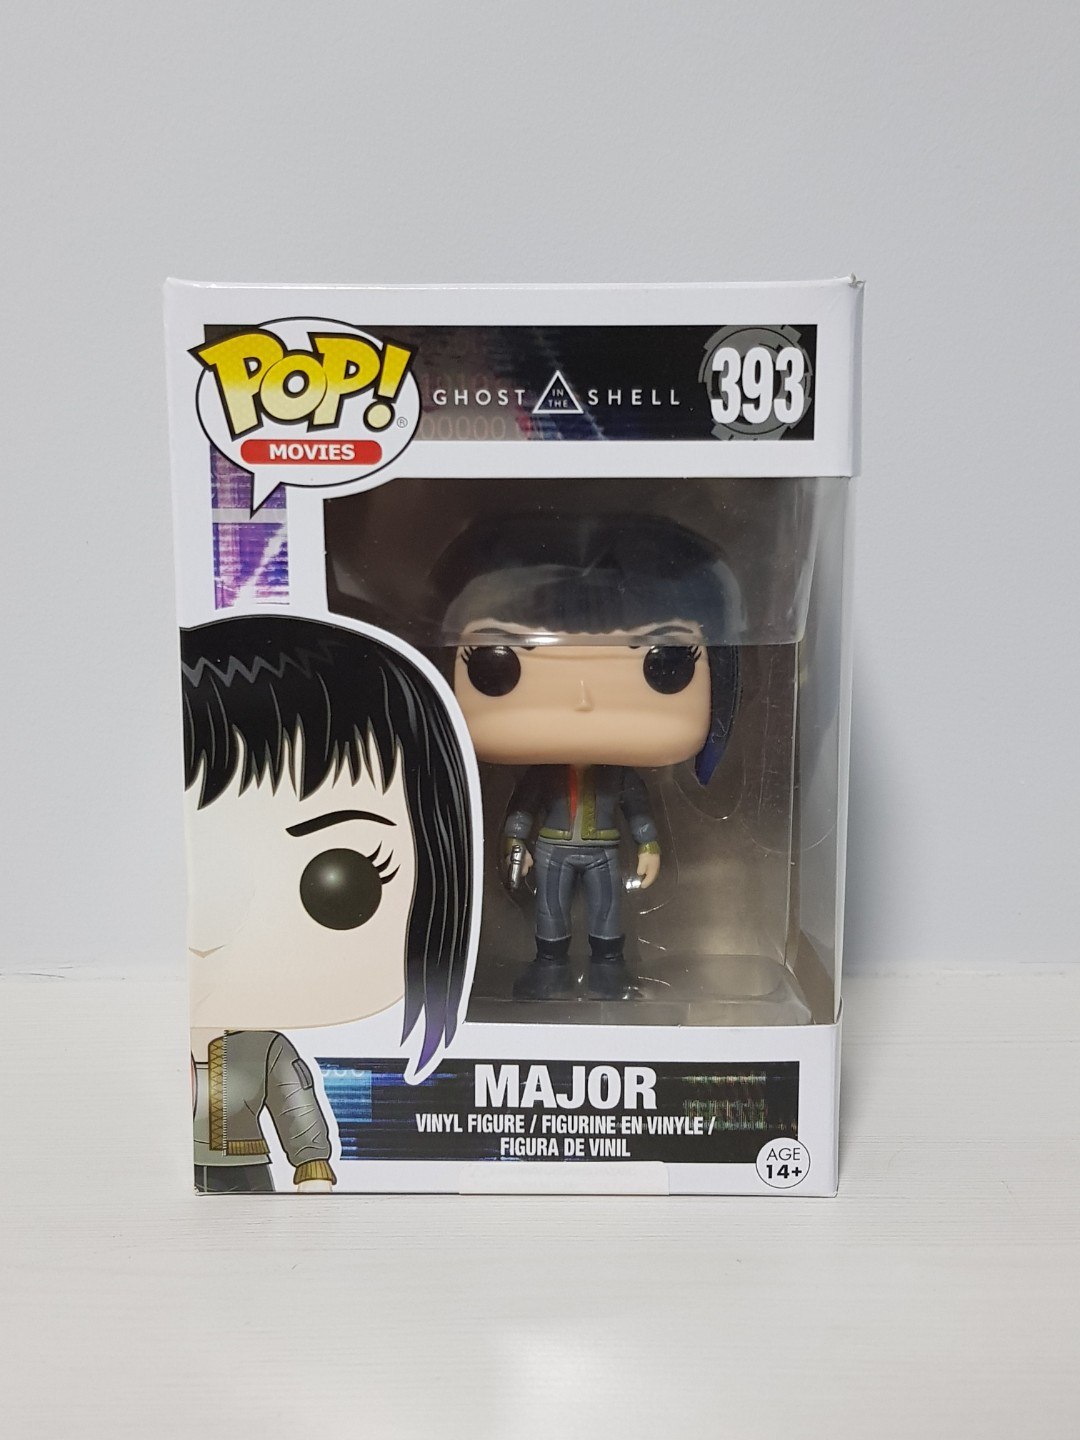 Movies New in Box Ghost in the Shell Vinyl Figure Funko POP MAJOR